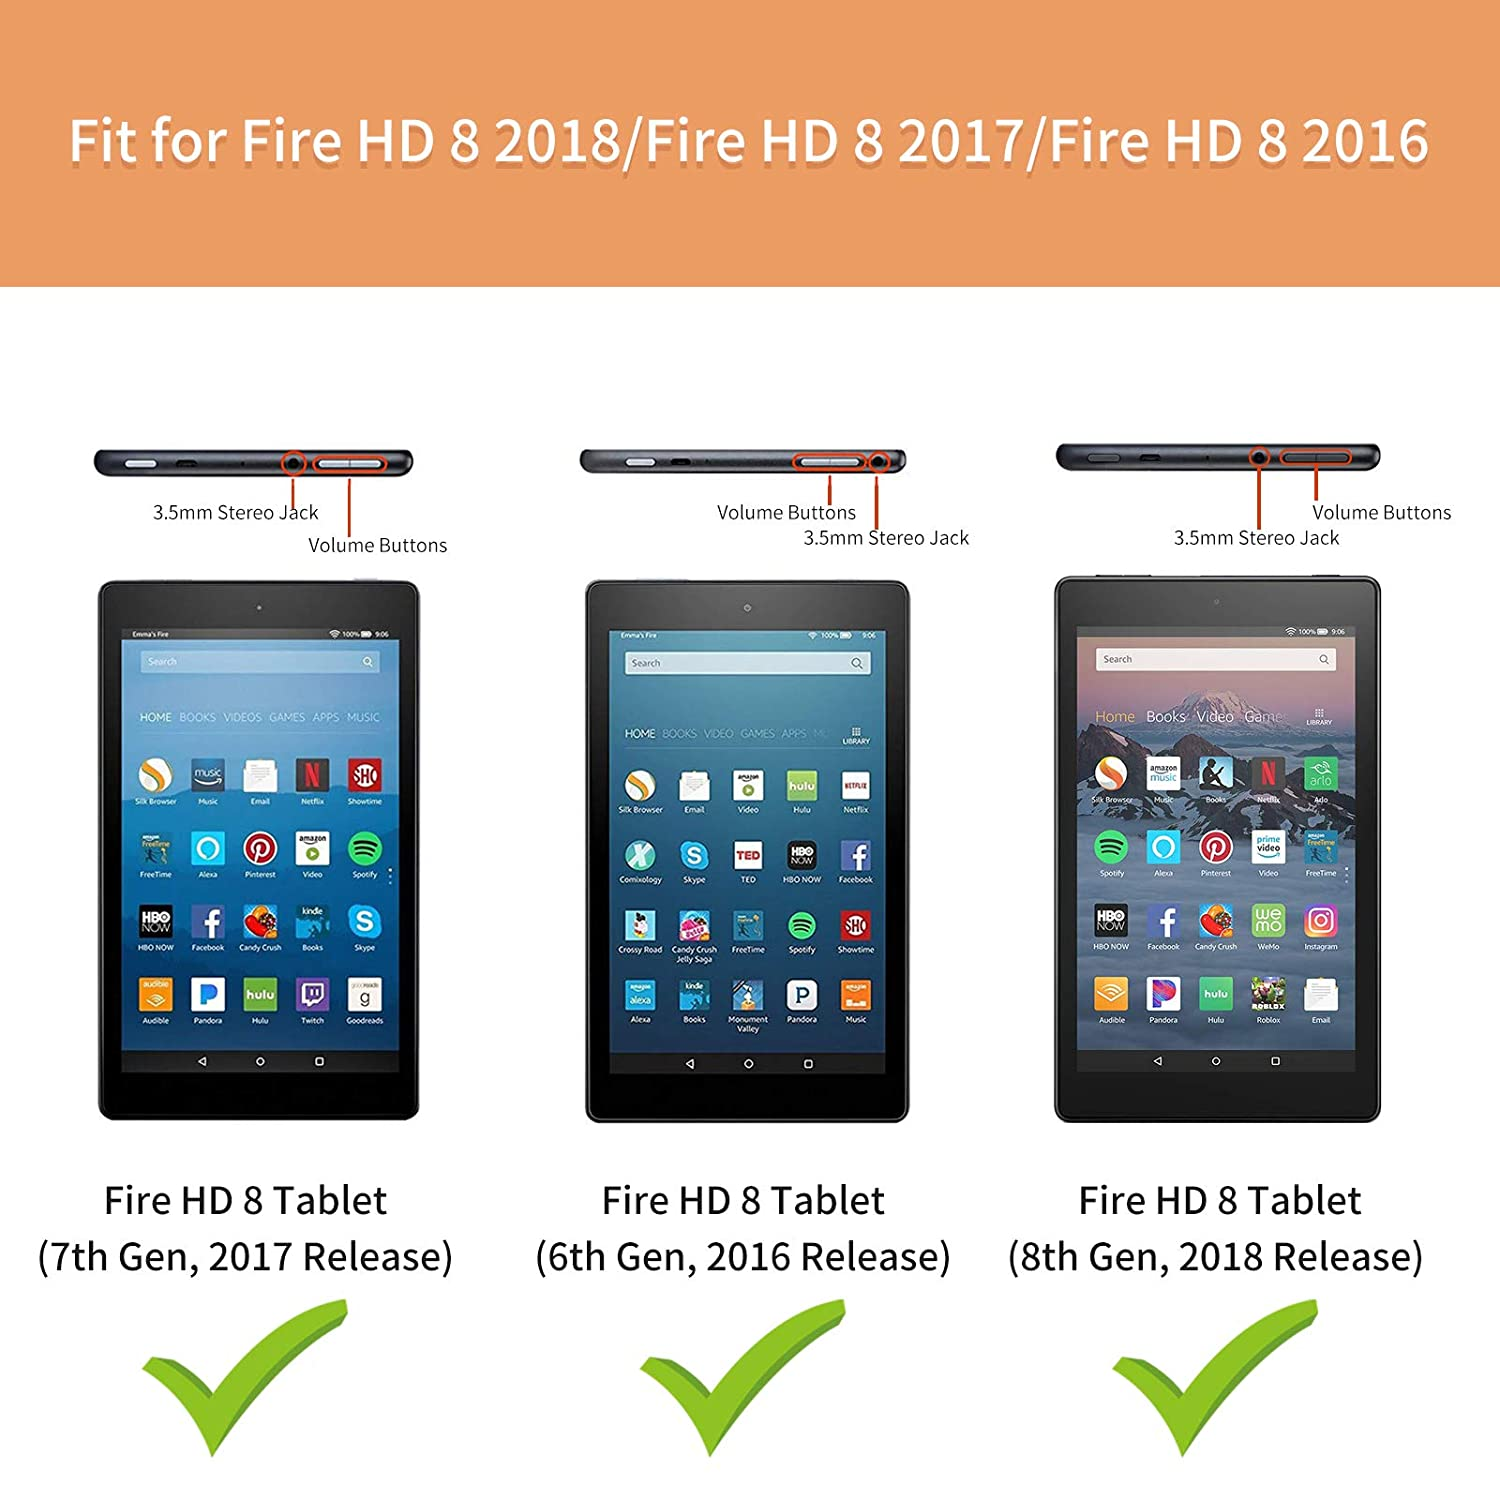 Slim Tri-fold Stand Cover Compatible with Fire HD 8 6th Gen, 2016 Release Black 8 Tablet 8th Gen, 2018 Release Infiland Fire HD 8 Case // Fire HD 8 7th Gen, 2017 Release // Fire HD 8